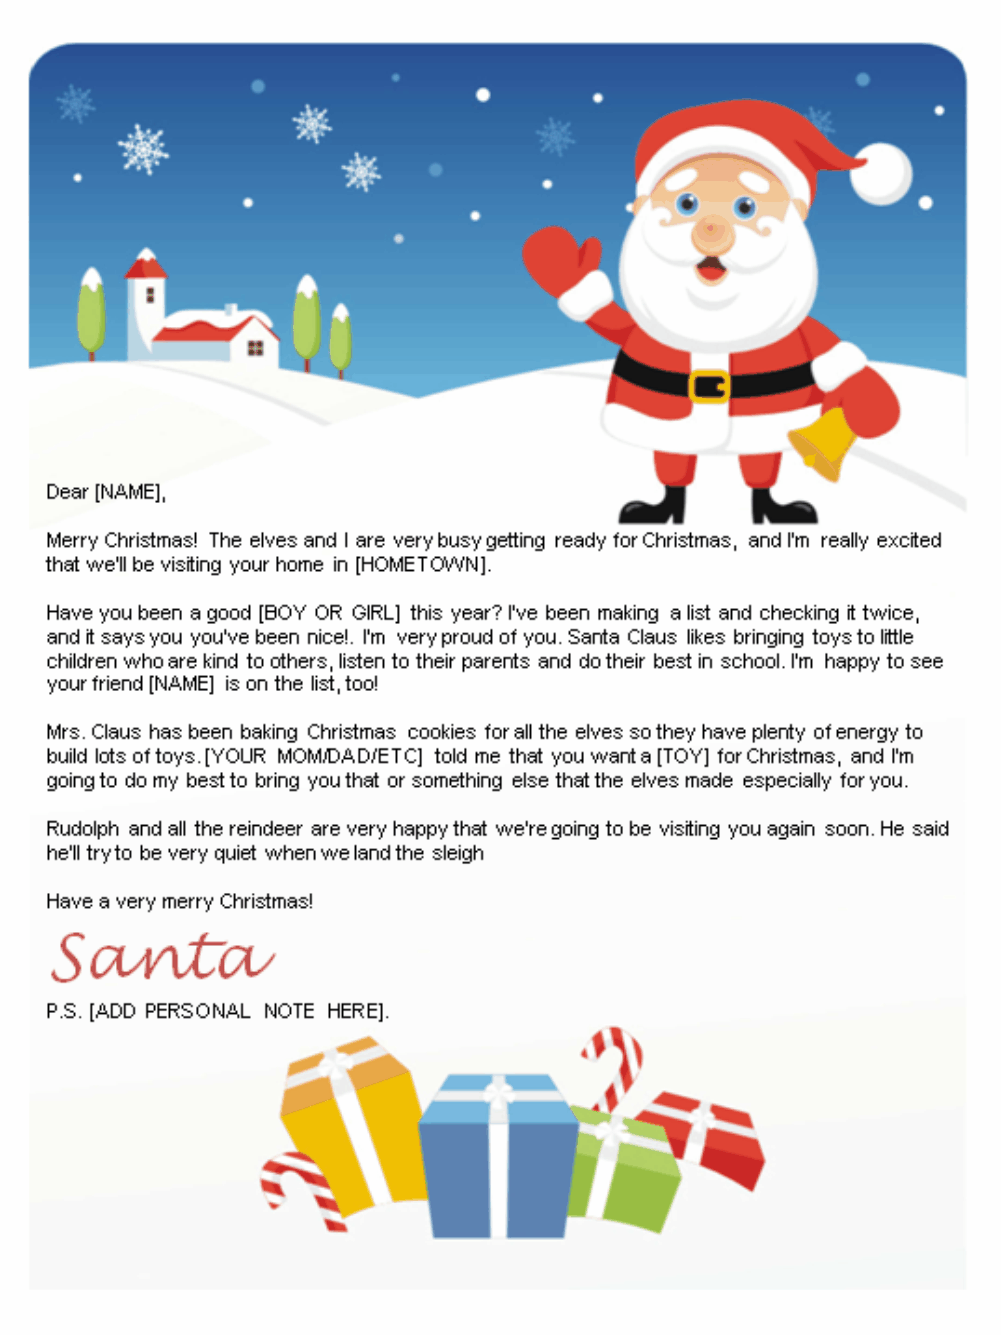 letters from santa santa letters to print at home gifts letters from santa santa letters to print at home gifts designs at christmas